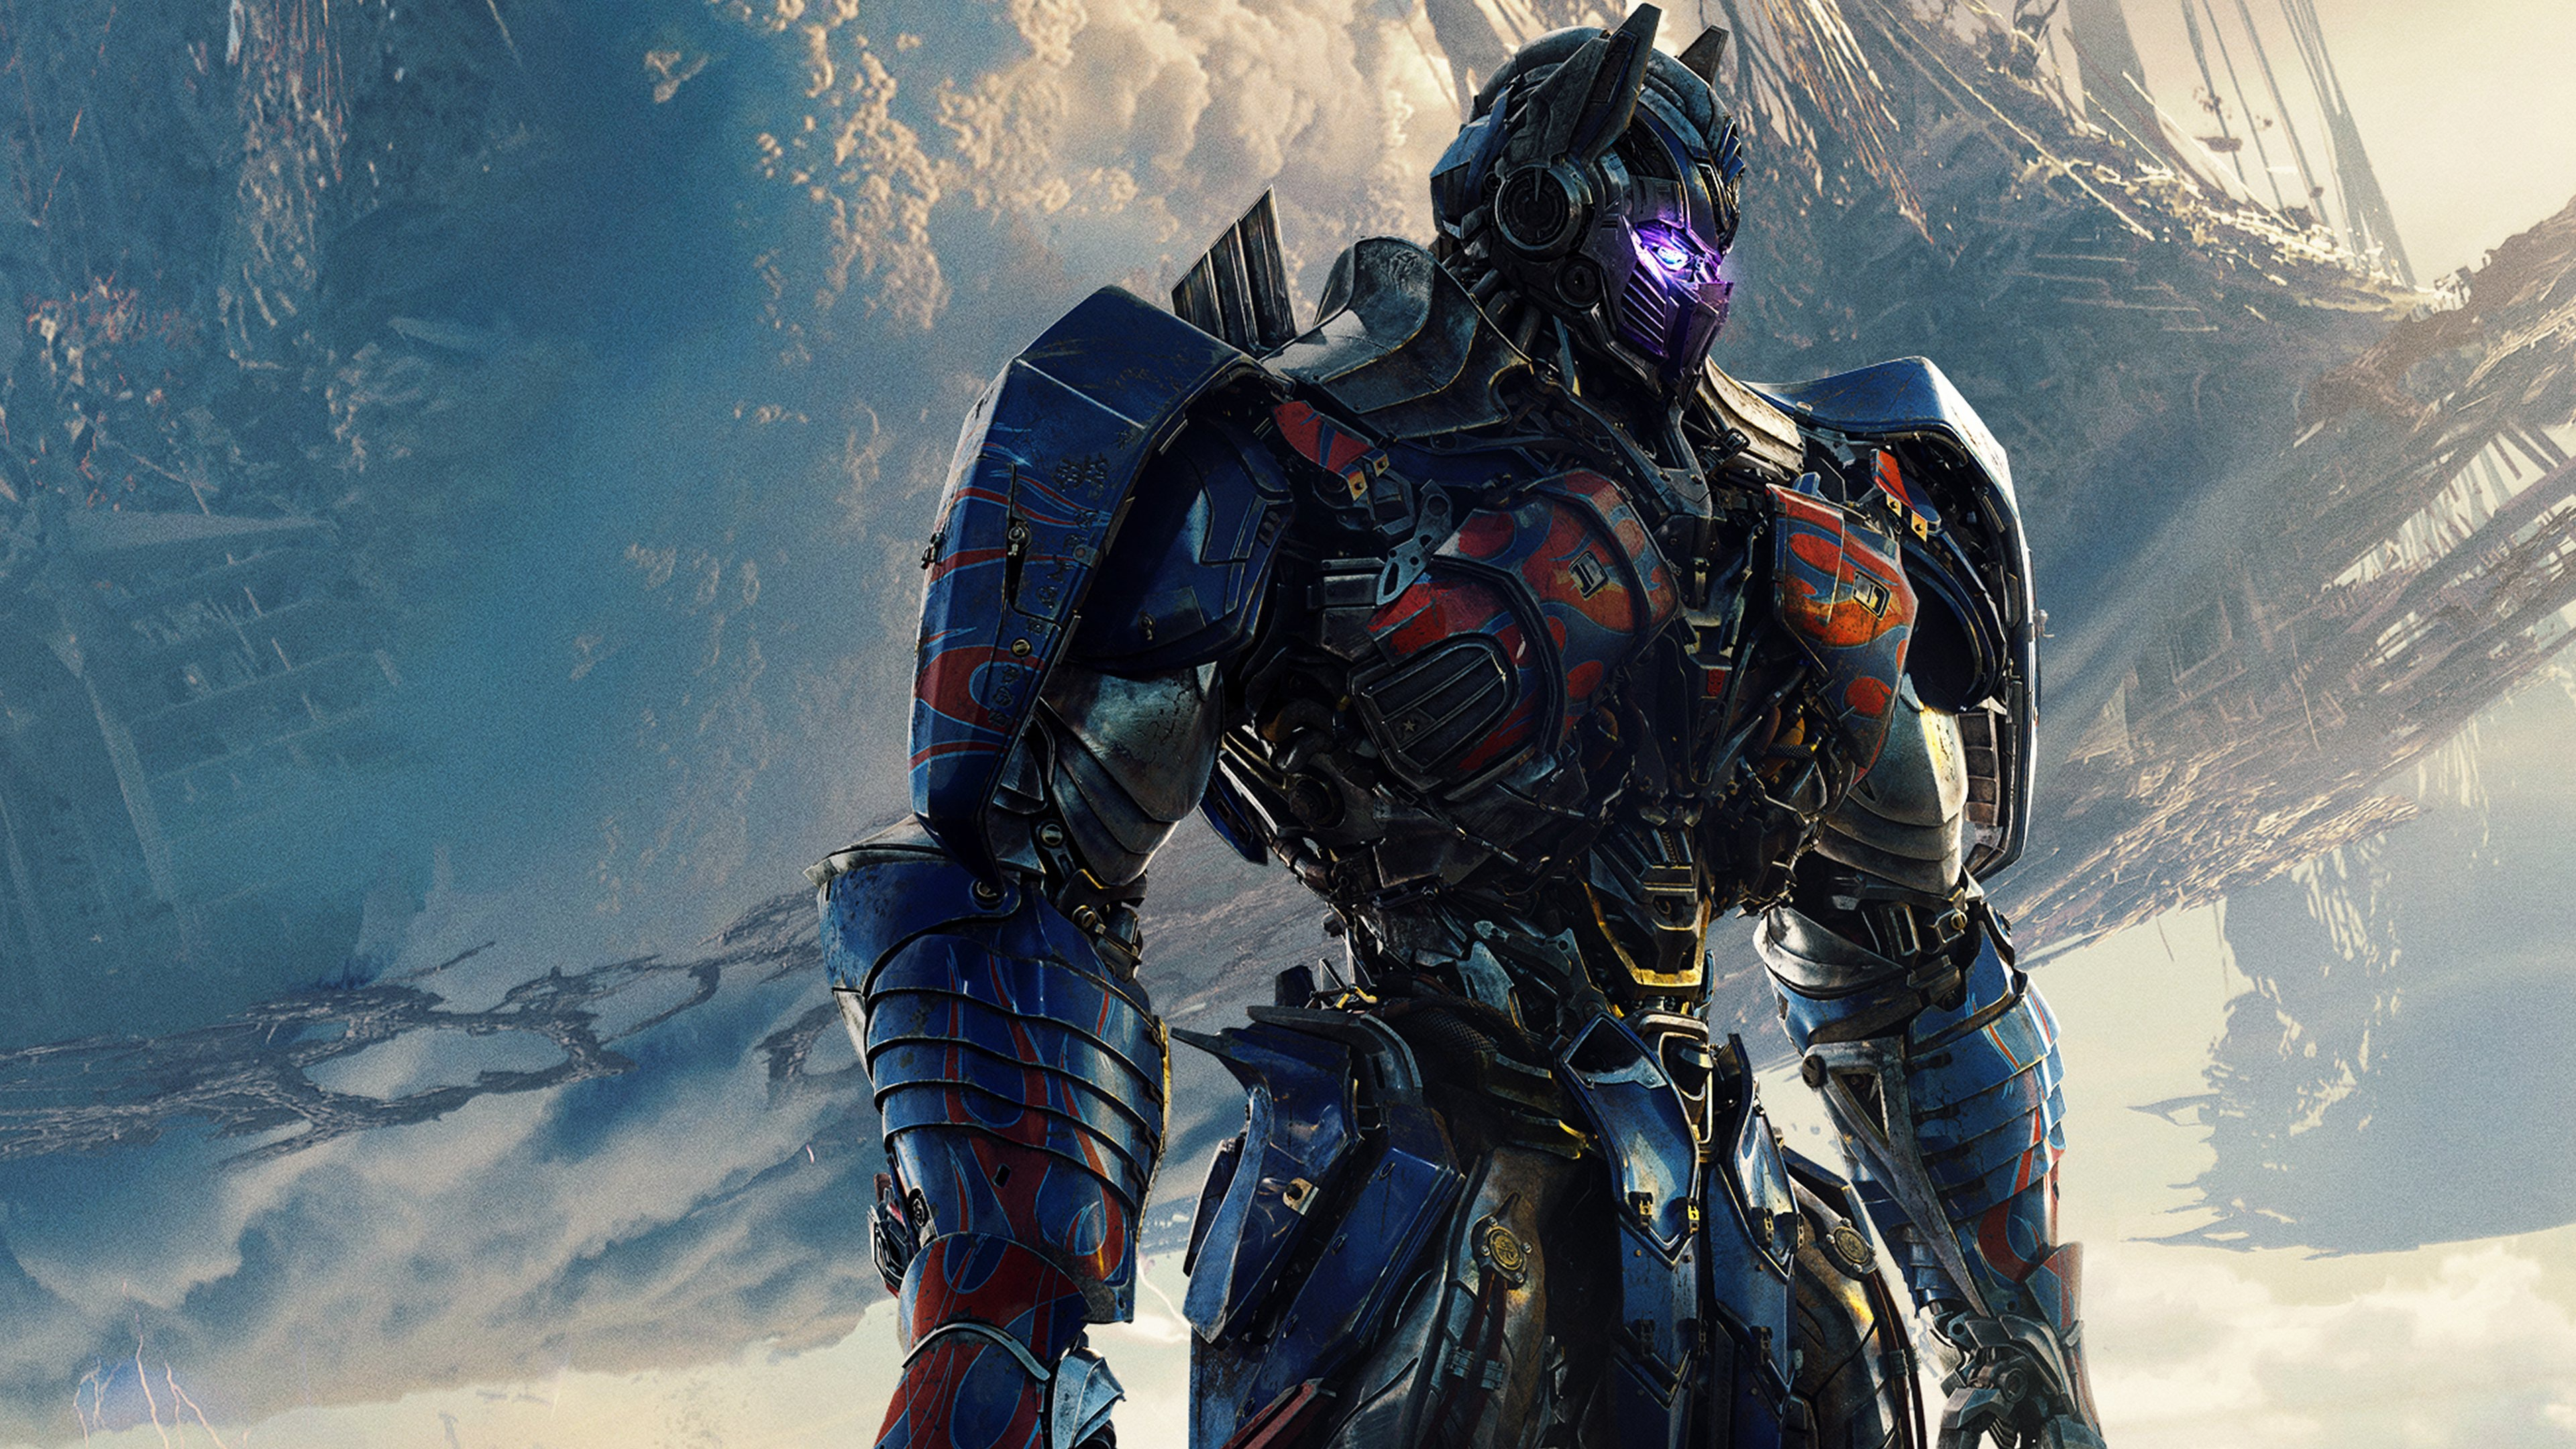 Transformers: The Last Knight Soundtrack